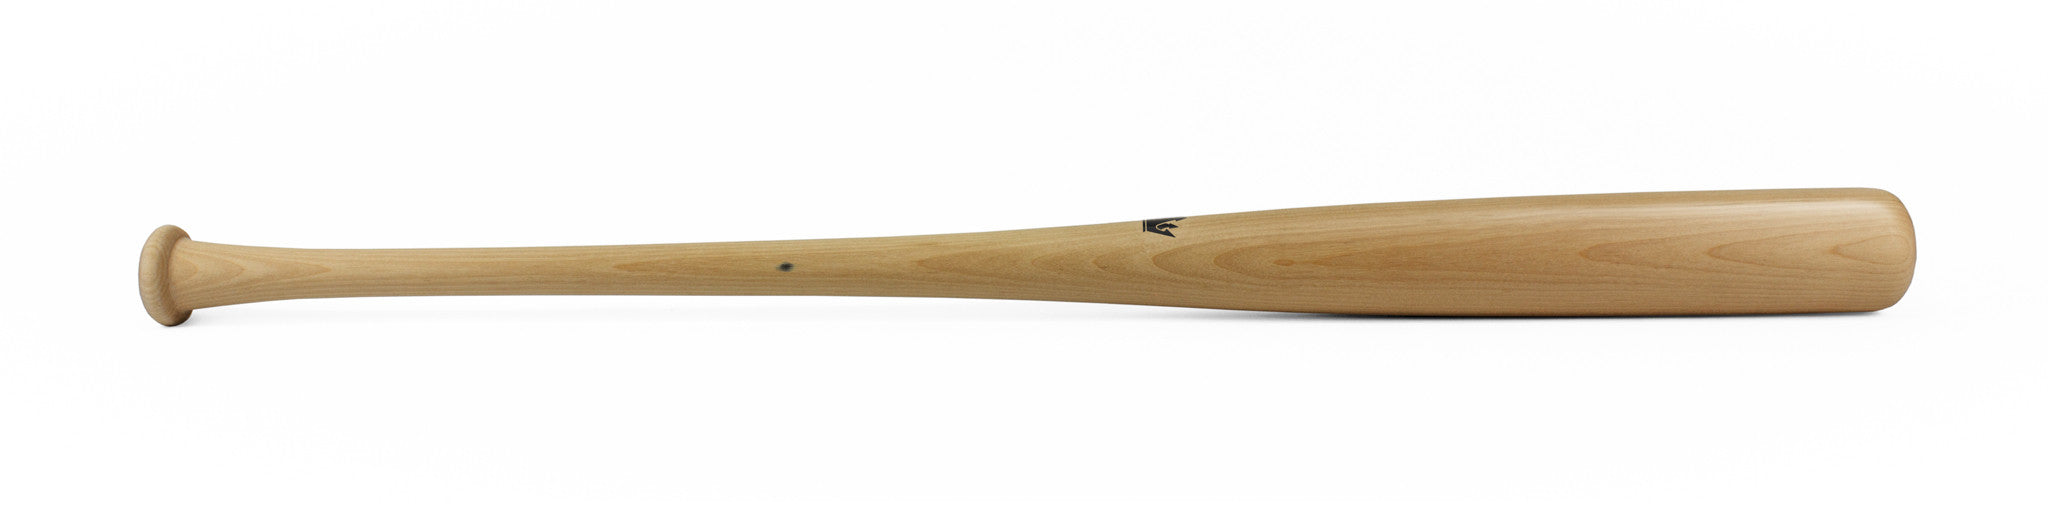 Wood bat - Birch model 141-P Clear - 18